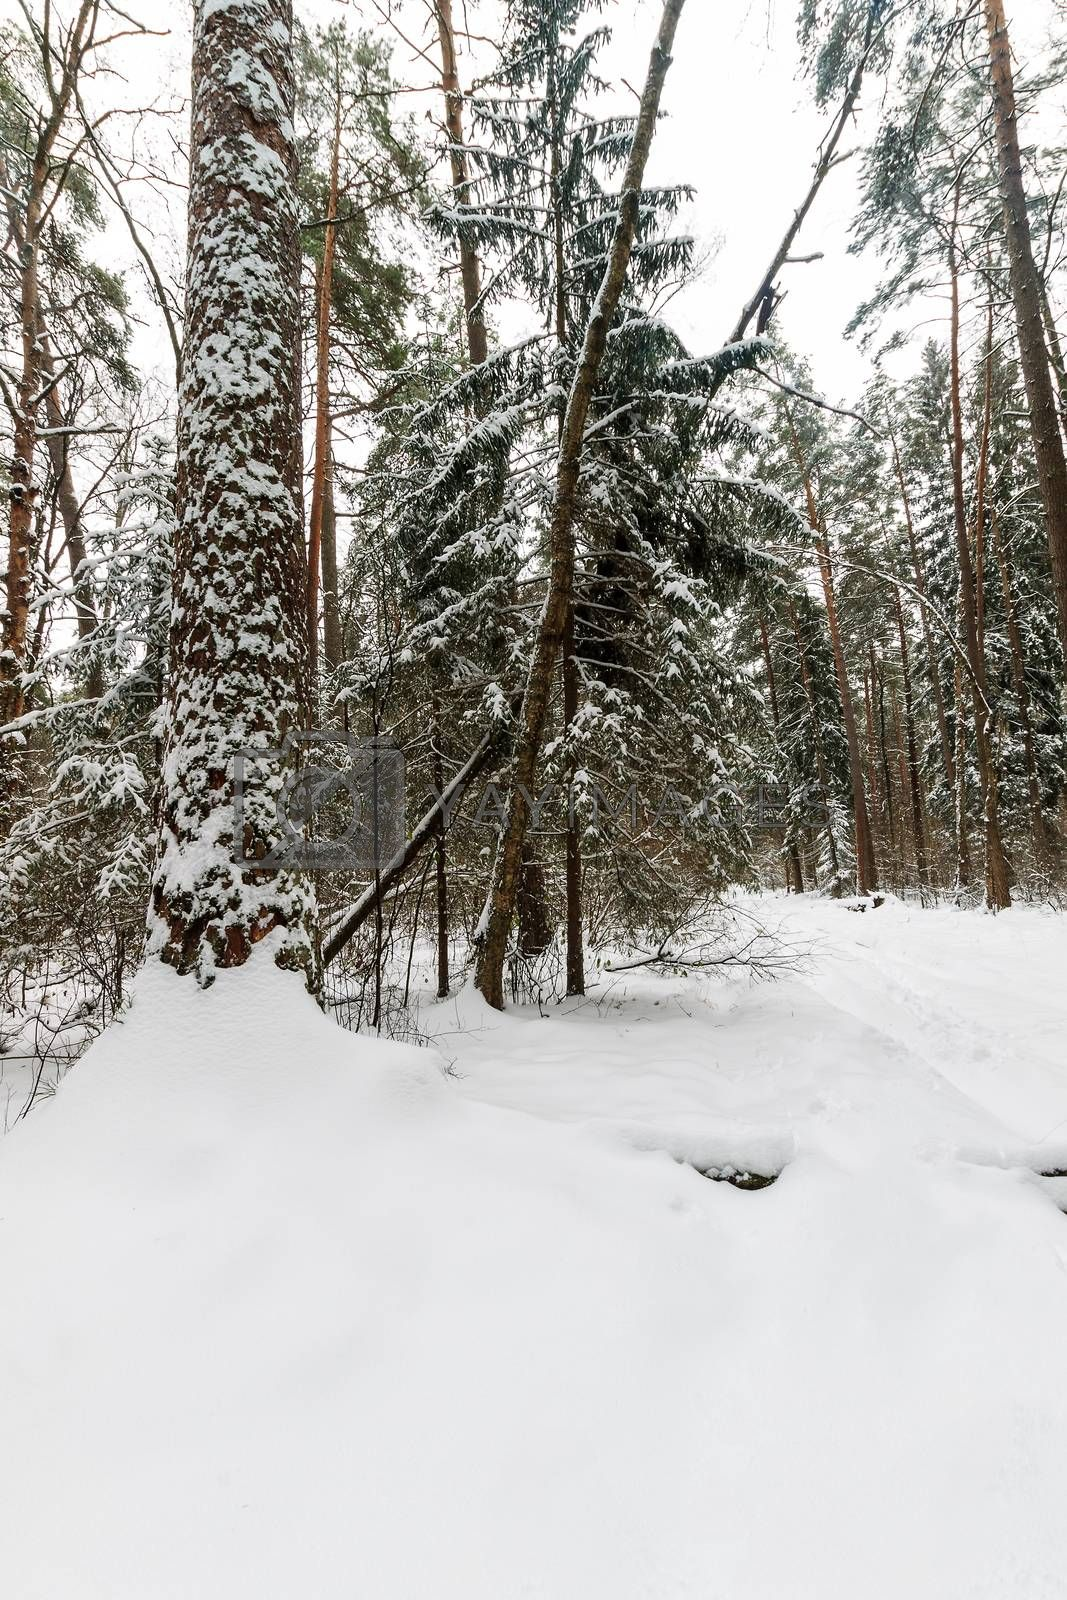 Landscape of winter pine and spruce forest covered with frost at mainly cloudly weather. First snow at autumn season.